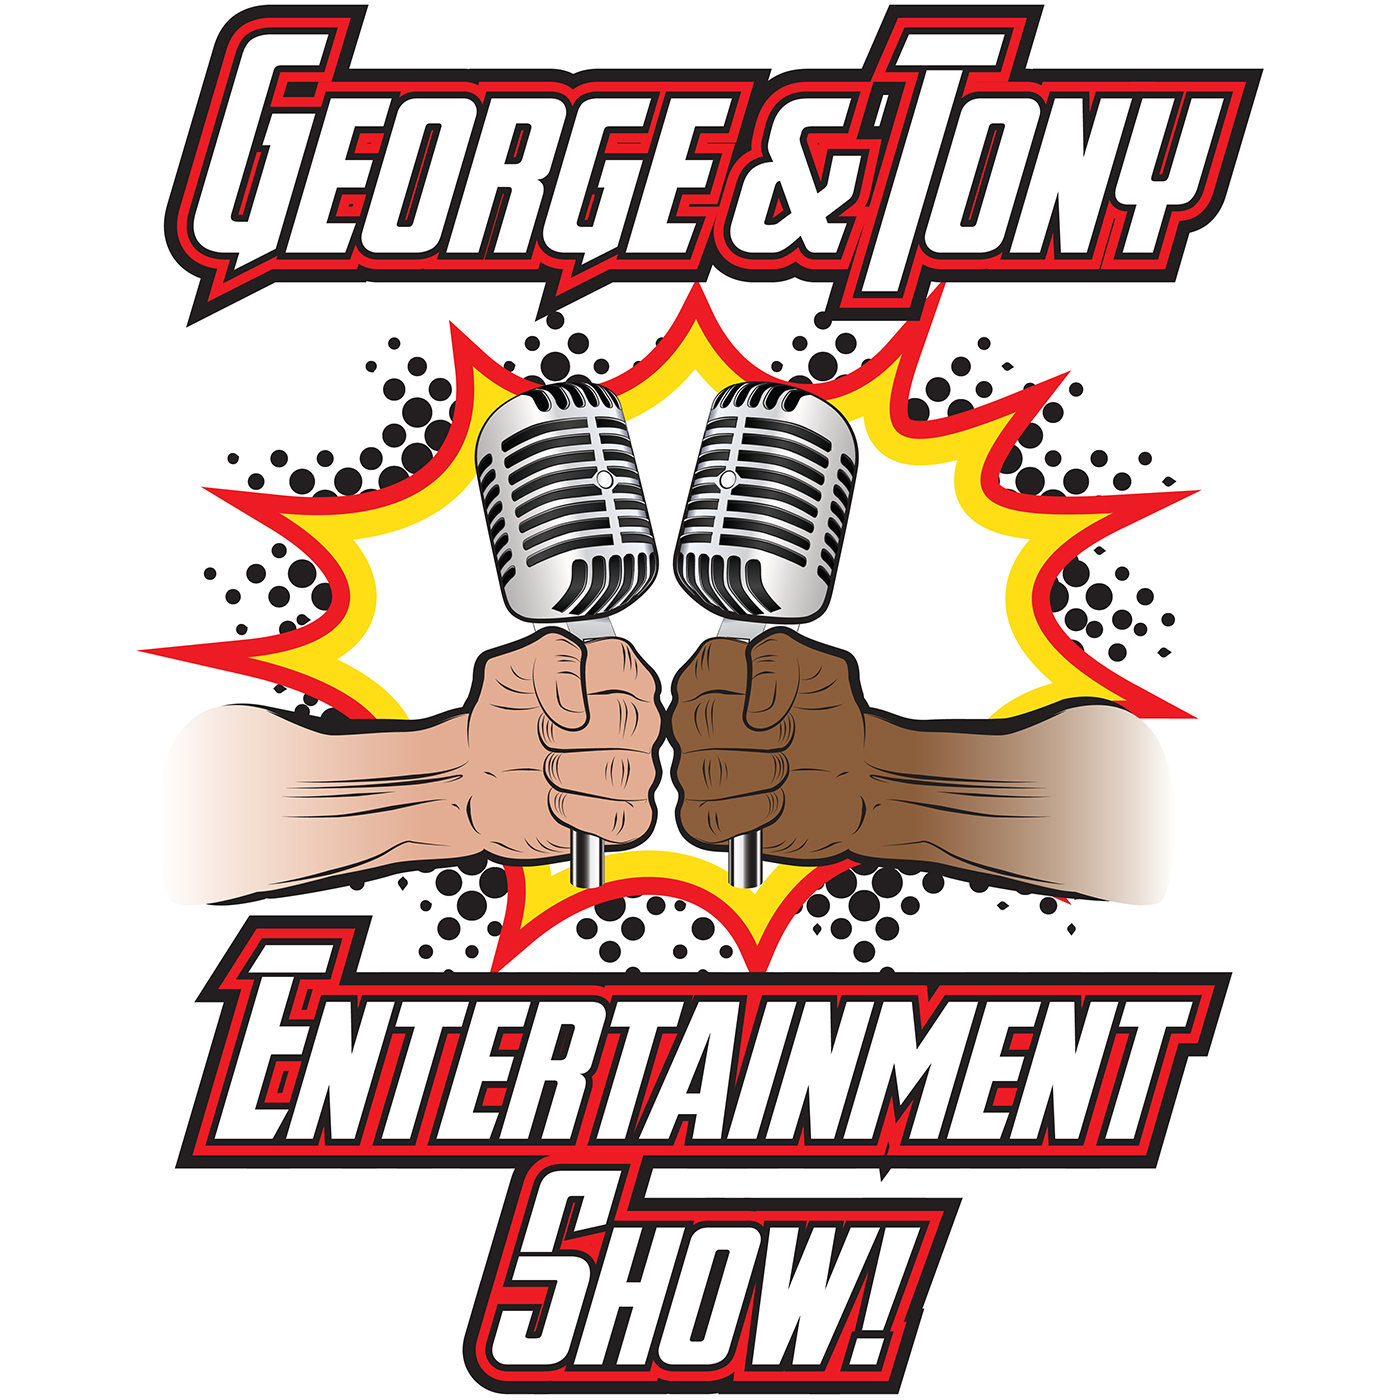 George and Tony Entertainment Show #109